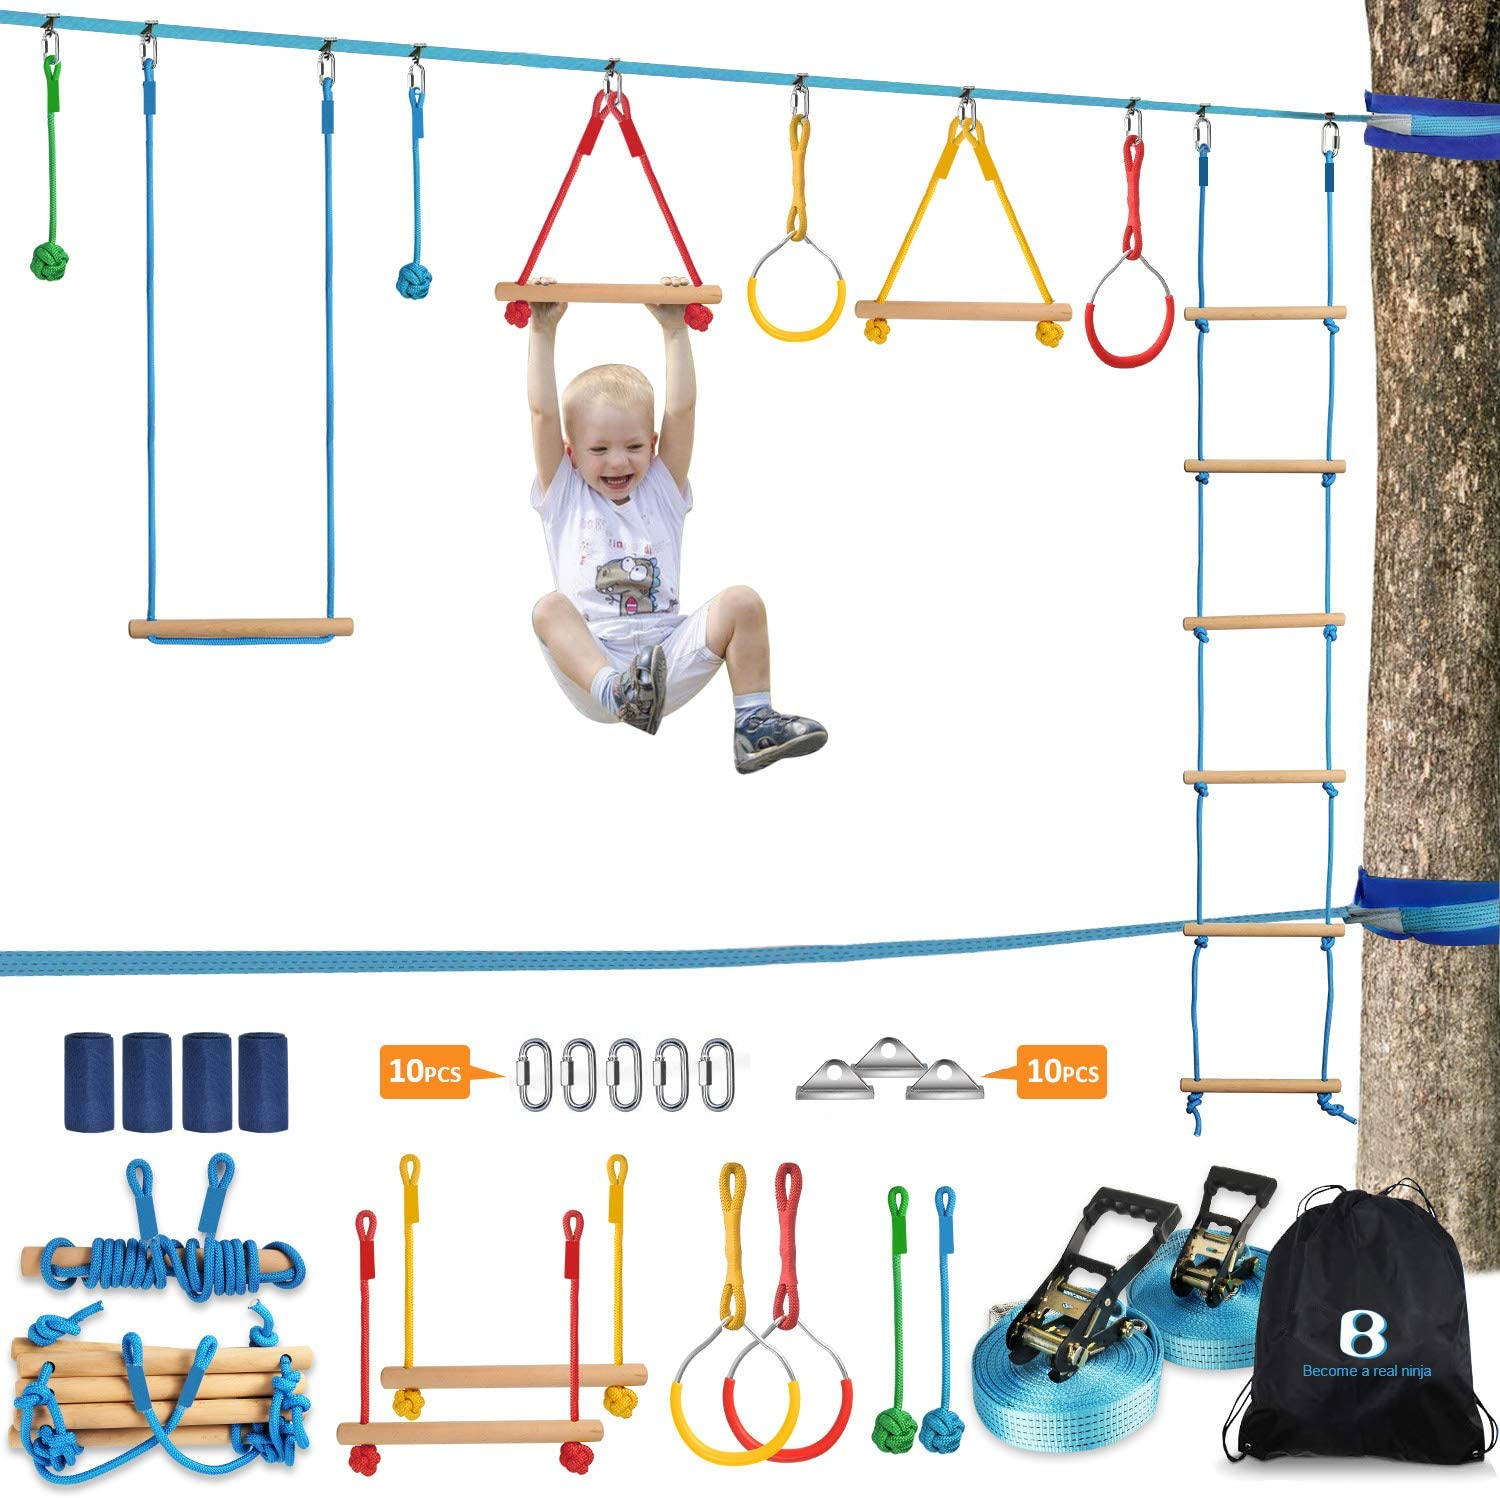 Ninja Warrior Obstacle Course Kit for Kids 37 PCS 52' Ninja Line Slackline Hanging Monkey Bars Fists Gymnastic Rings Swing Rope Ladder Portable Outdoor Ninja Course Training Equipment Set for Backyard